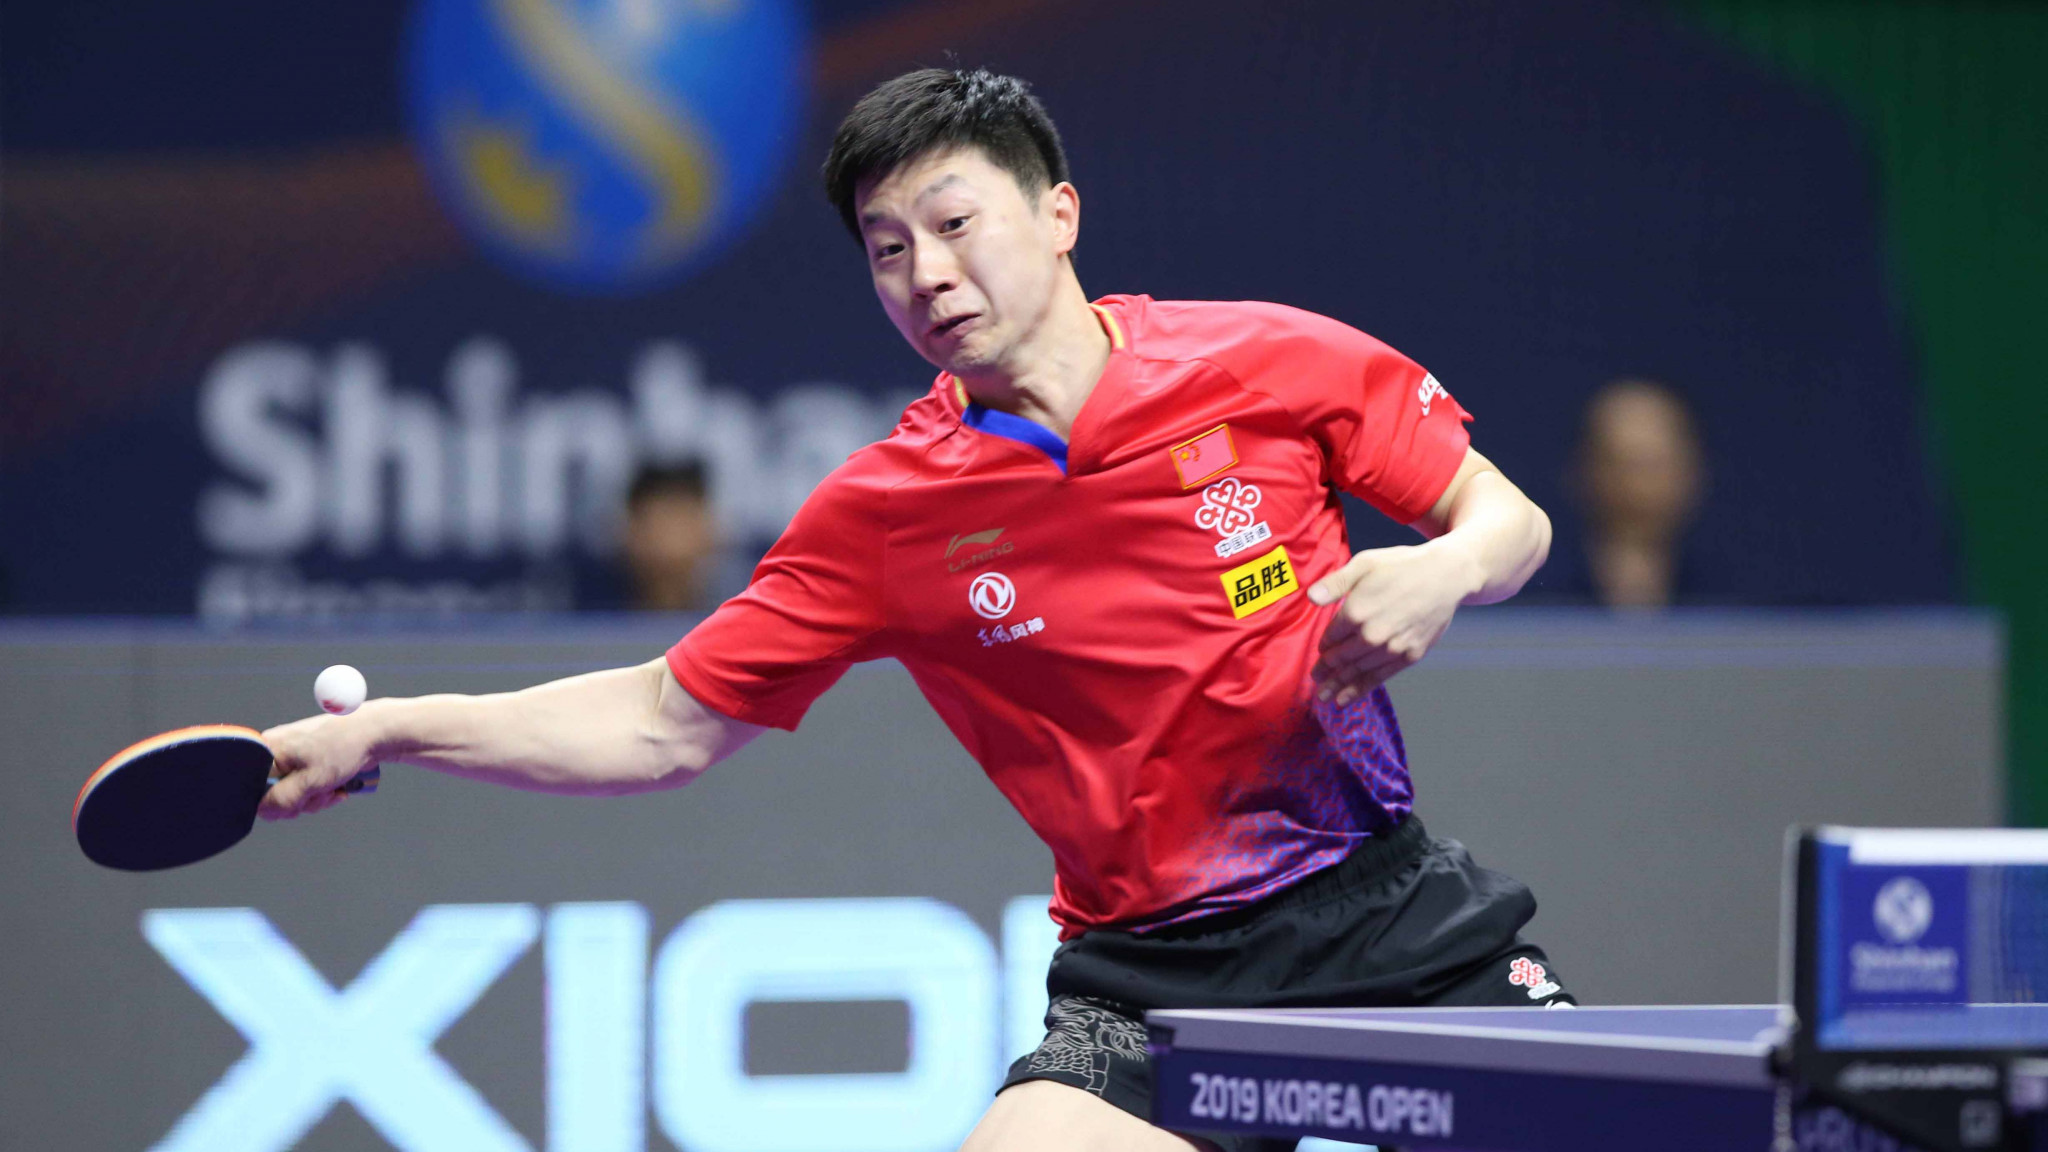 Reigning world and Olympic champion Ma Long survived a scare against home player Lim Jong-hoon to book his place in the men's singles quarter-finals at the ITTF Korea Open in Busan ©An Sungho/ITTF